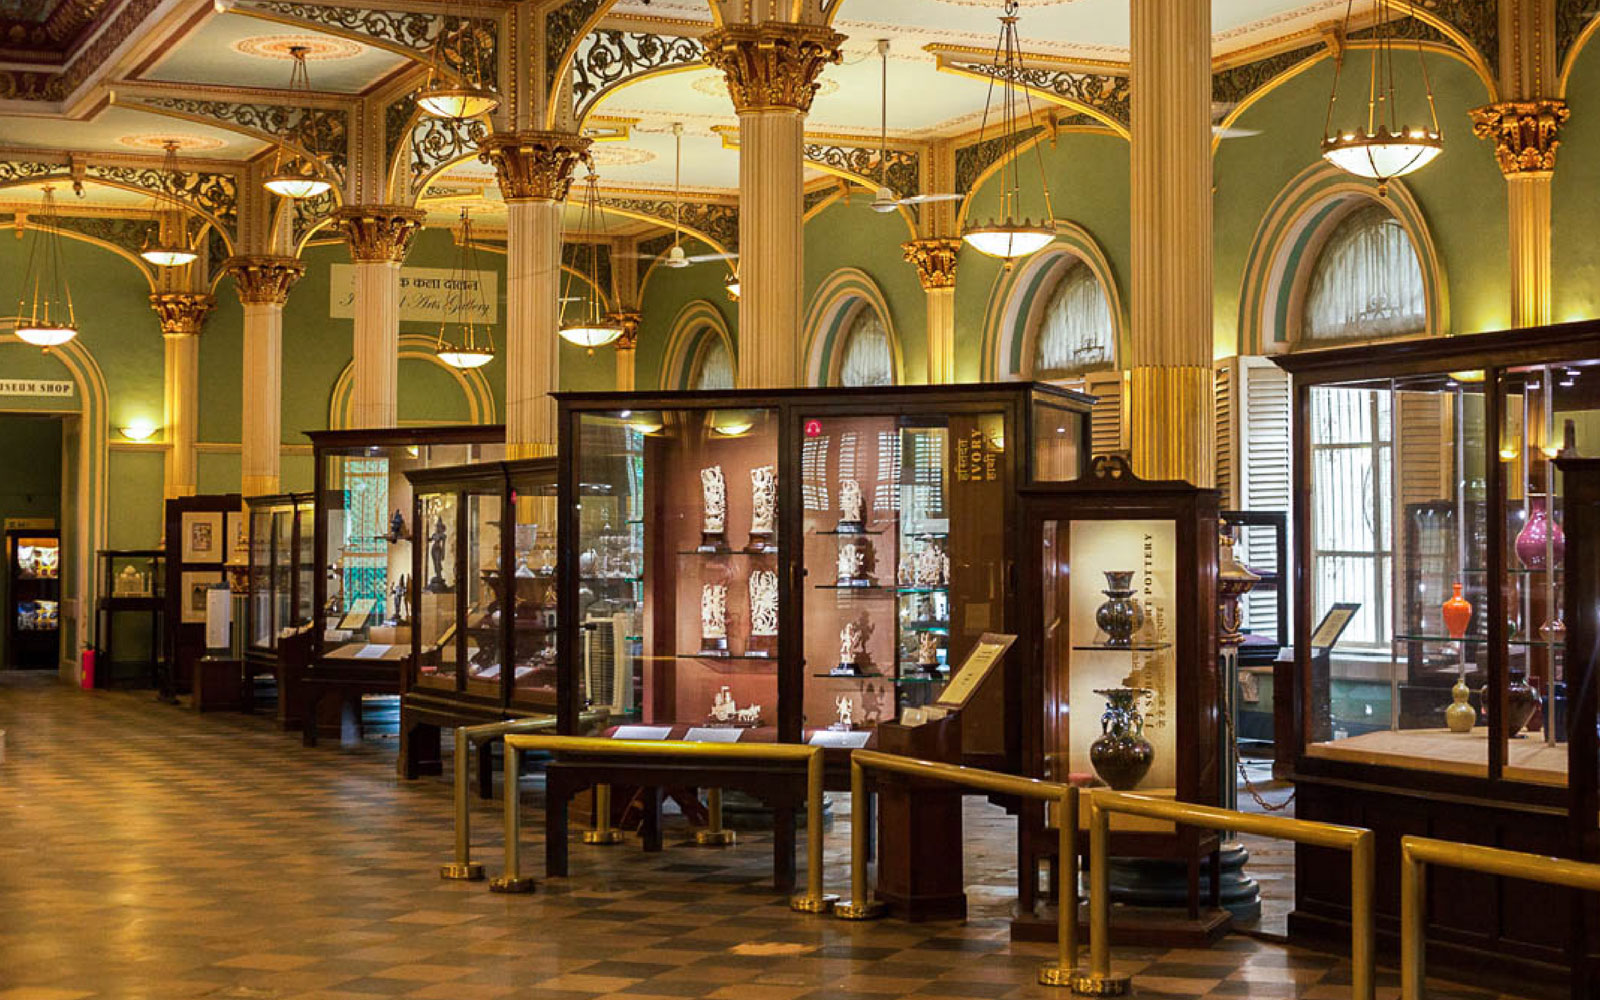 Curated visits to state-of-the-art museums like this for your group | Image © Dr Bhau Daji Lad Mumbai City Museum